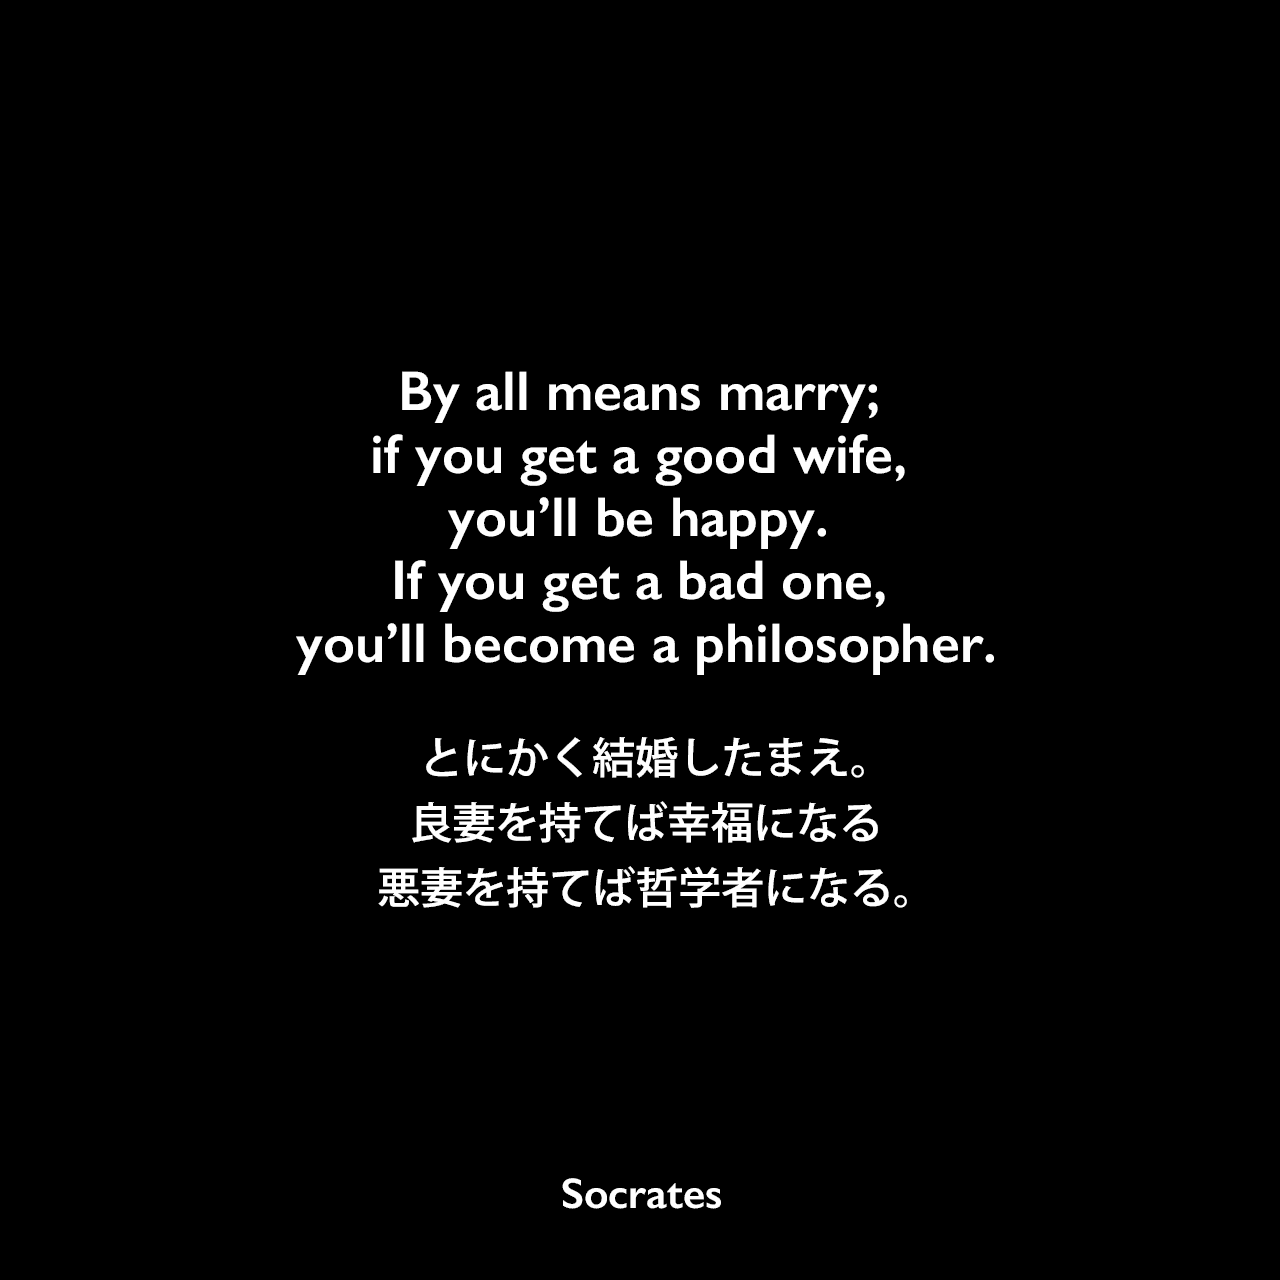 By all means marry; if you get a good wife, you'll be happy. If you get a bad one, you'll become a philosopher.とにかく結婚したまえ。良妻を持てば幸福になる、悪妻を持てば哲学者になる。Socrates